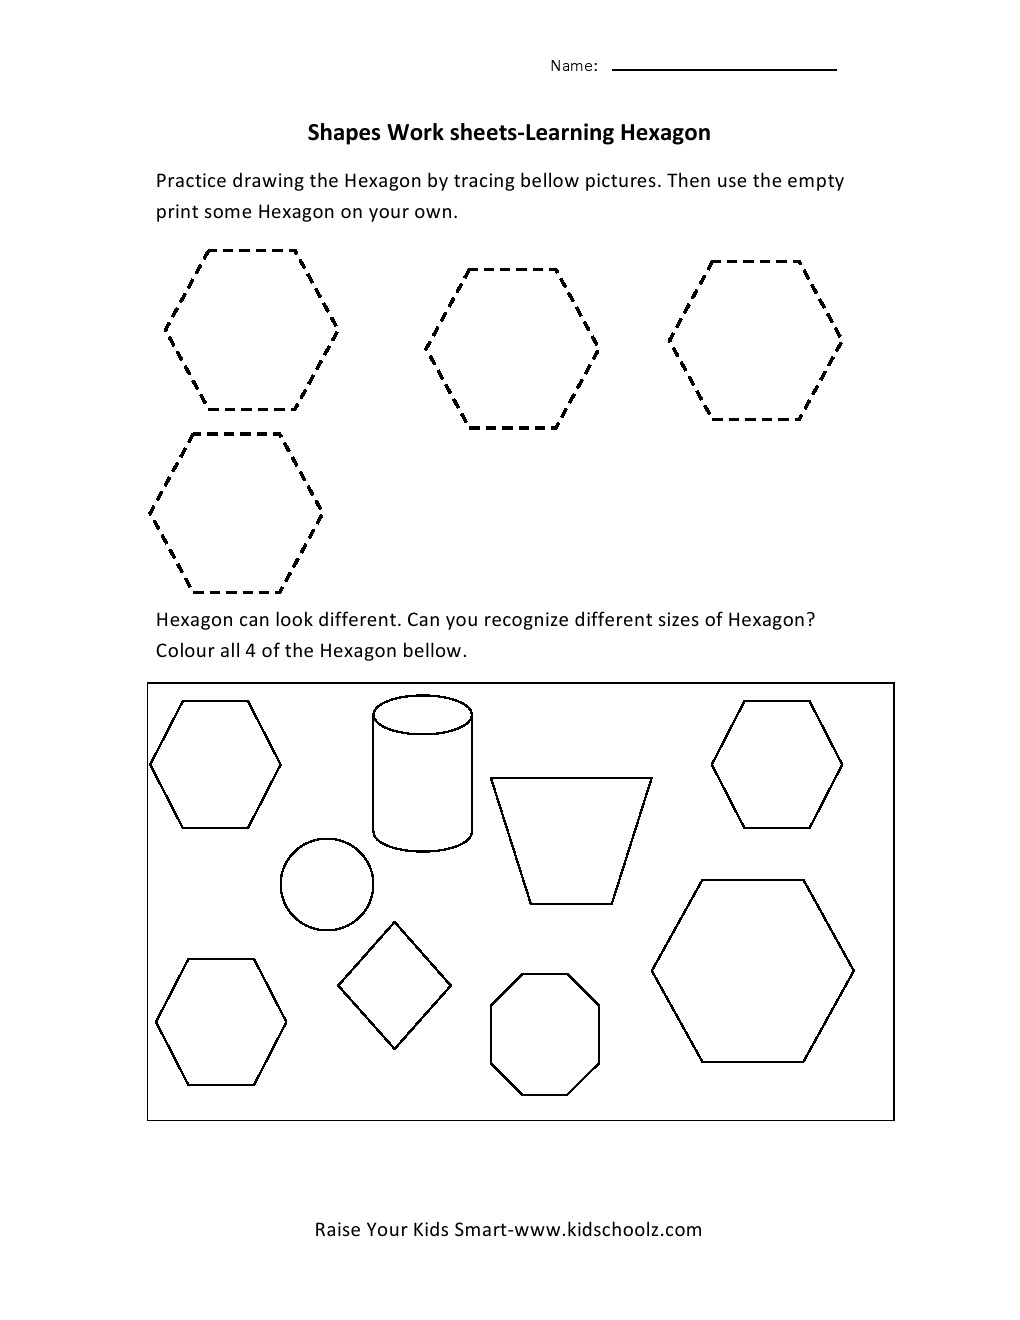 Learning Shapes Worksheets Hexagon Kidschoolz Counting Kinderg